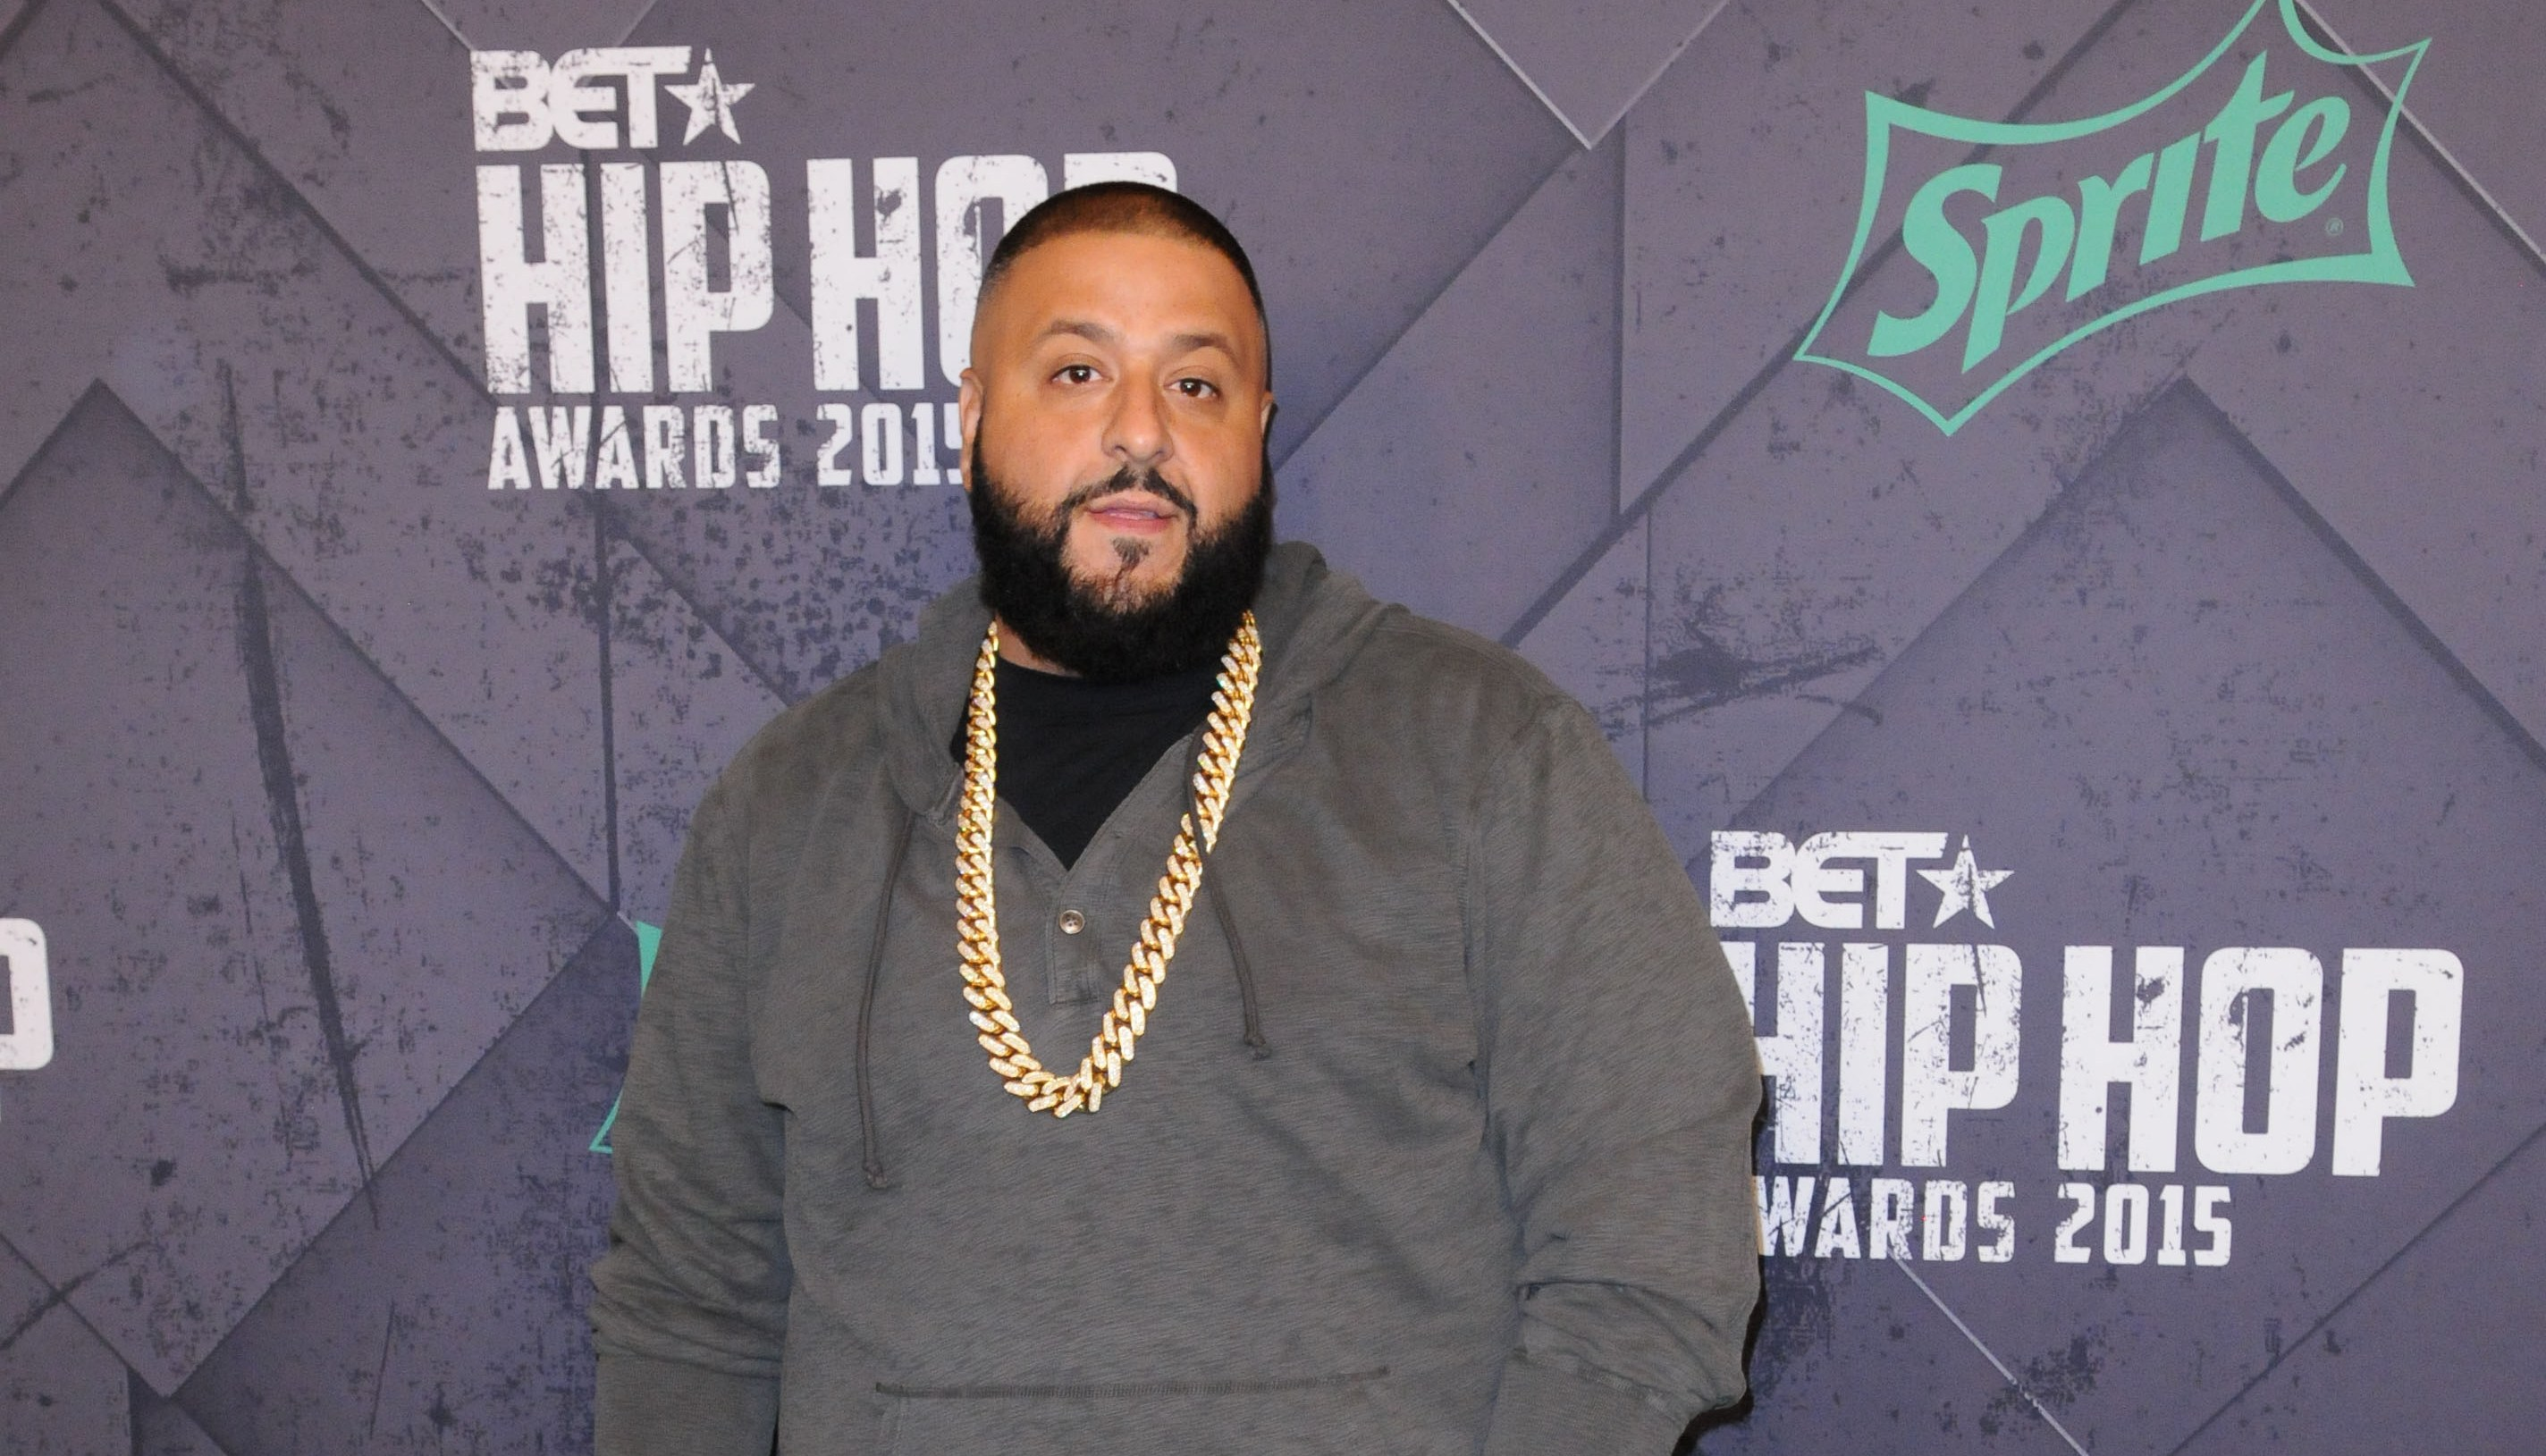 DJ Khaled at the 2015 BET Hip-Hop Awards